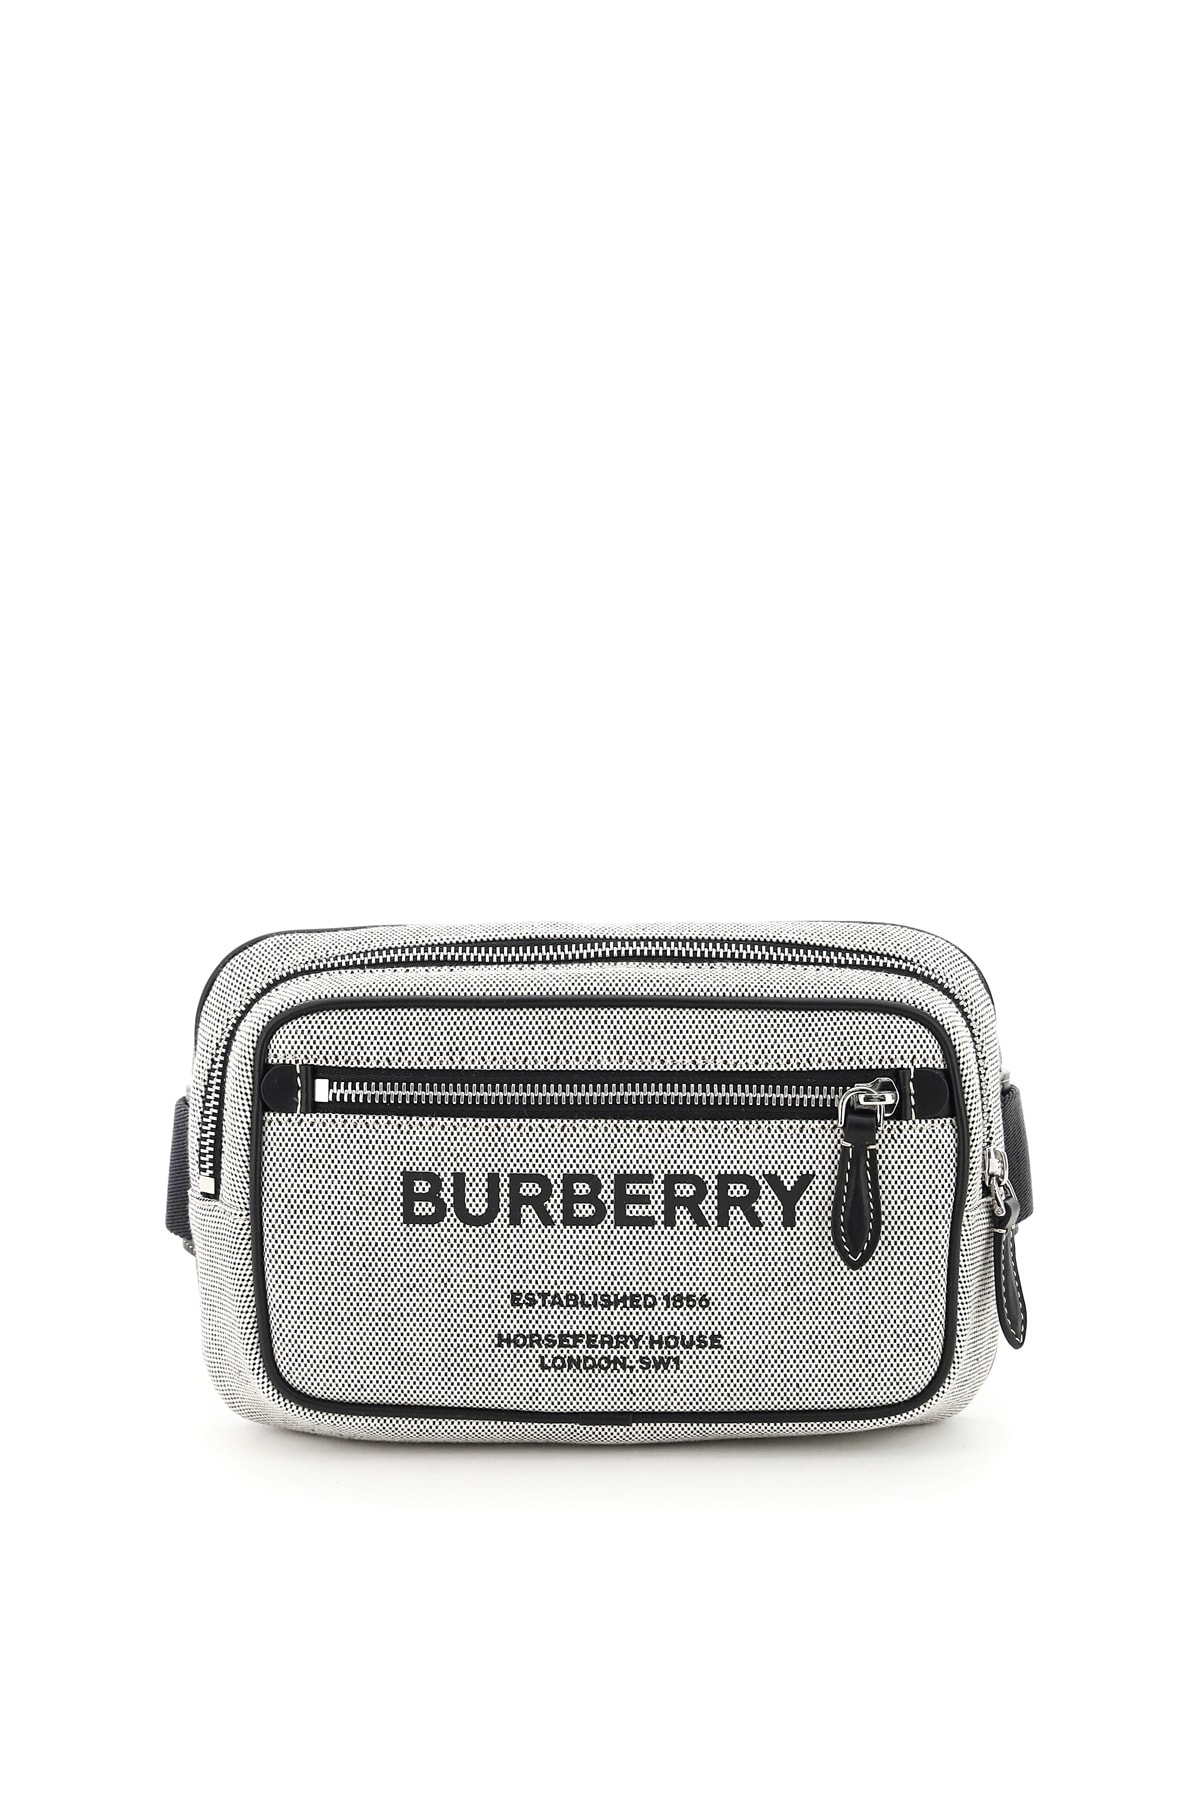 Burberry Leathers WEST CANVAS BELT BAG WITH LOGO